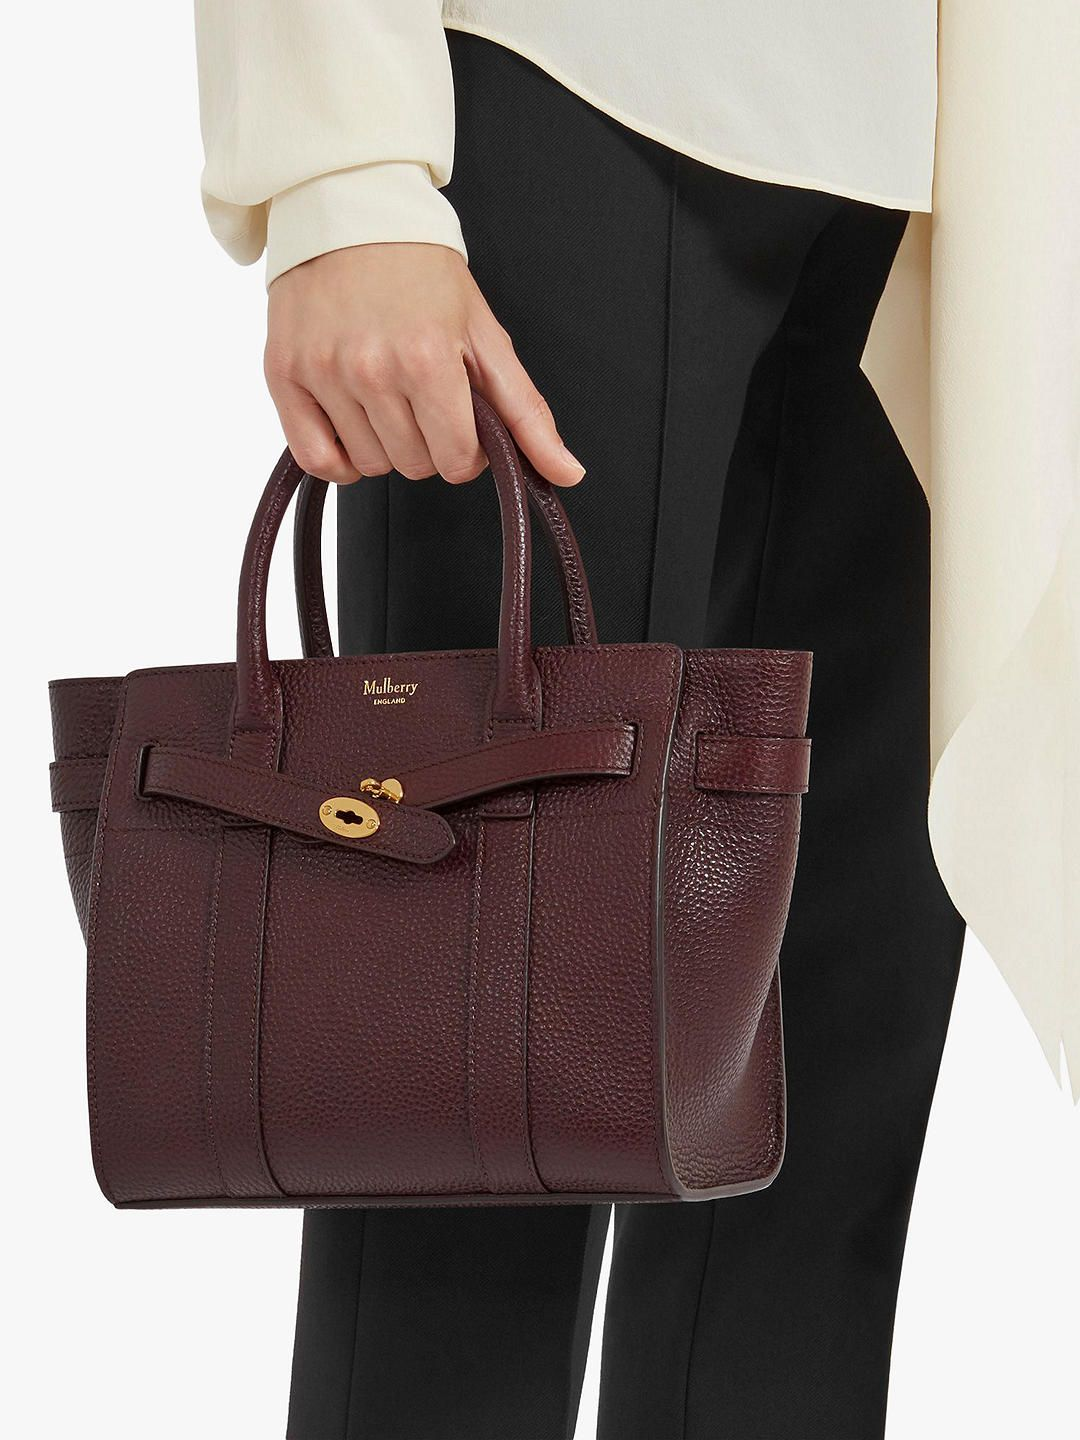 62806b400e2 BuyMulberry Mini Bayswater Zipped Grain Veg Tanned Leather Tote Bag,  Oxblood Online at johnlewis.